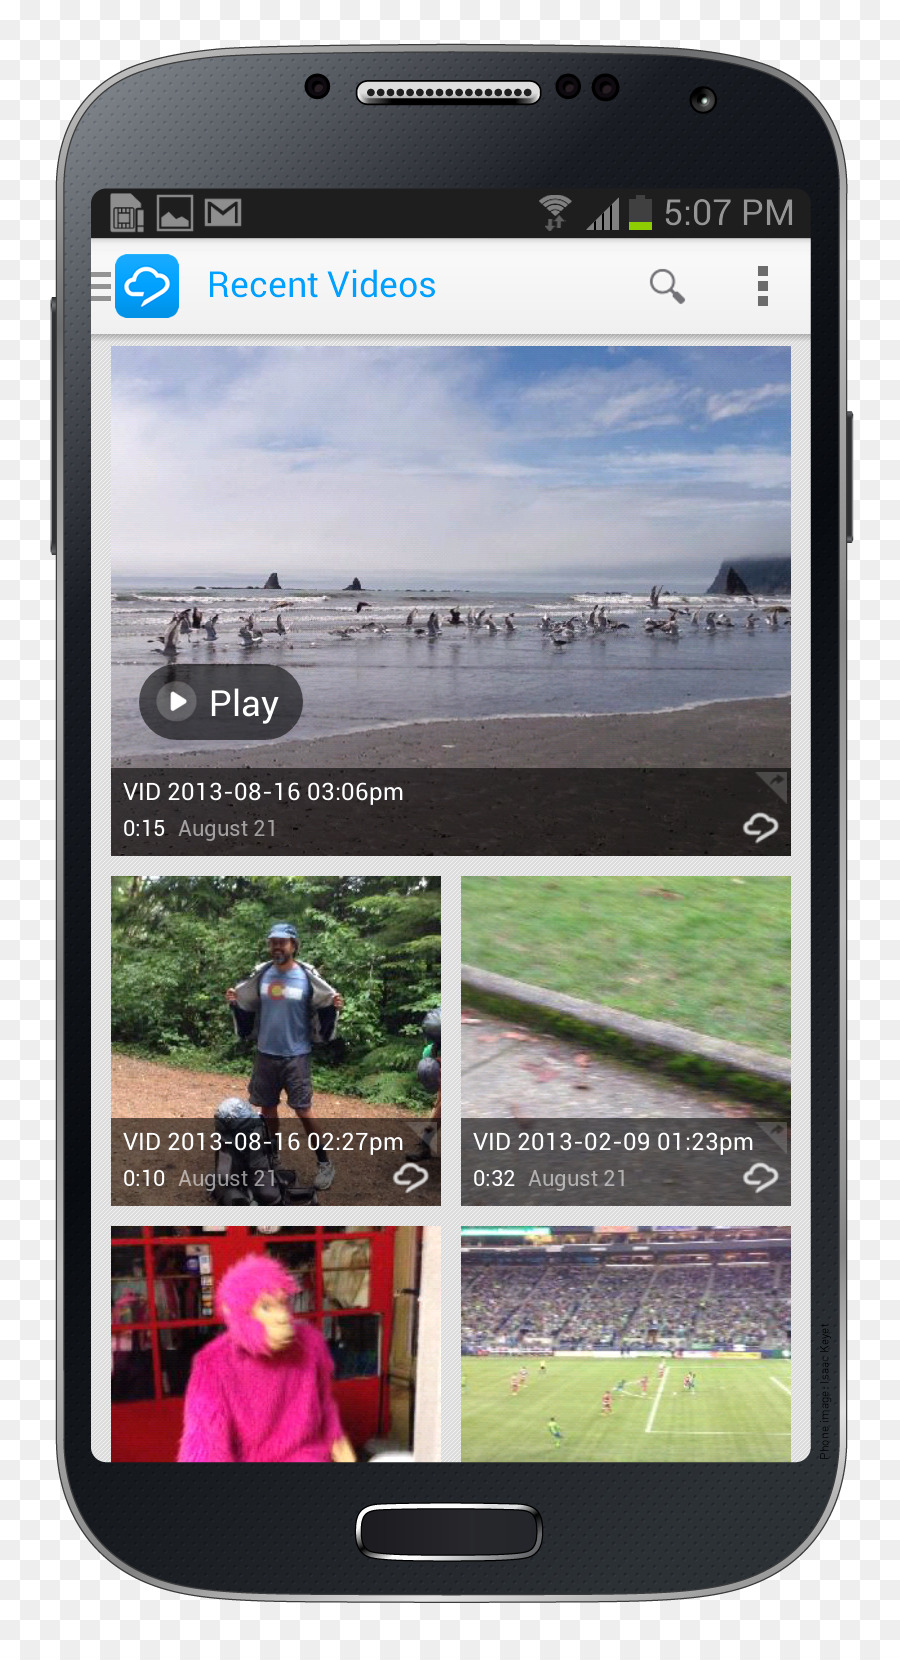 Download free realplayer free for windows mobiles v2. 4. 5 free.